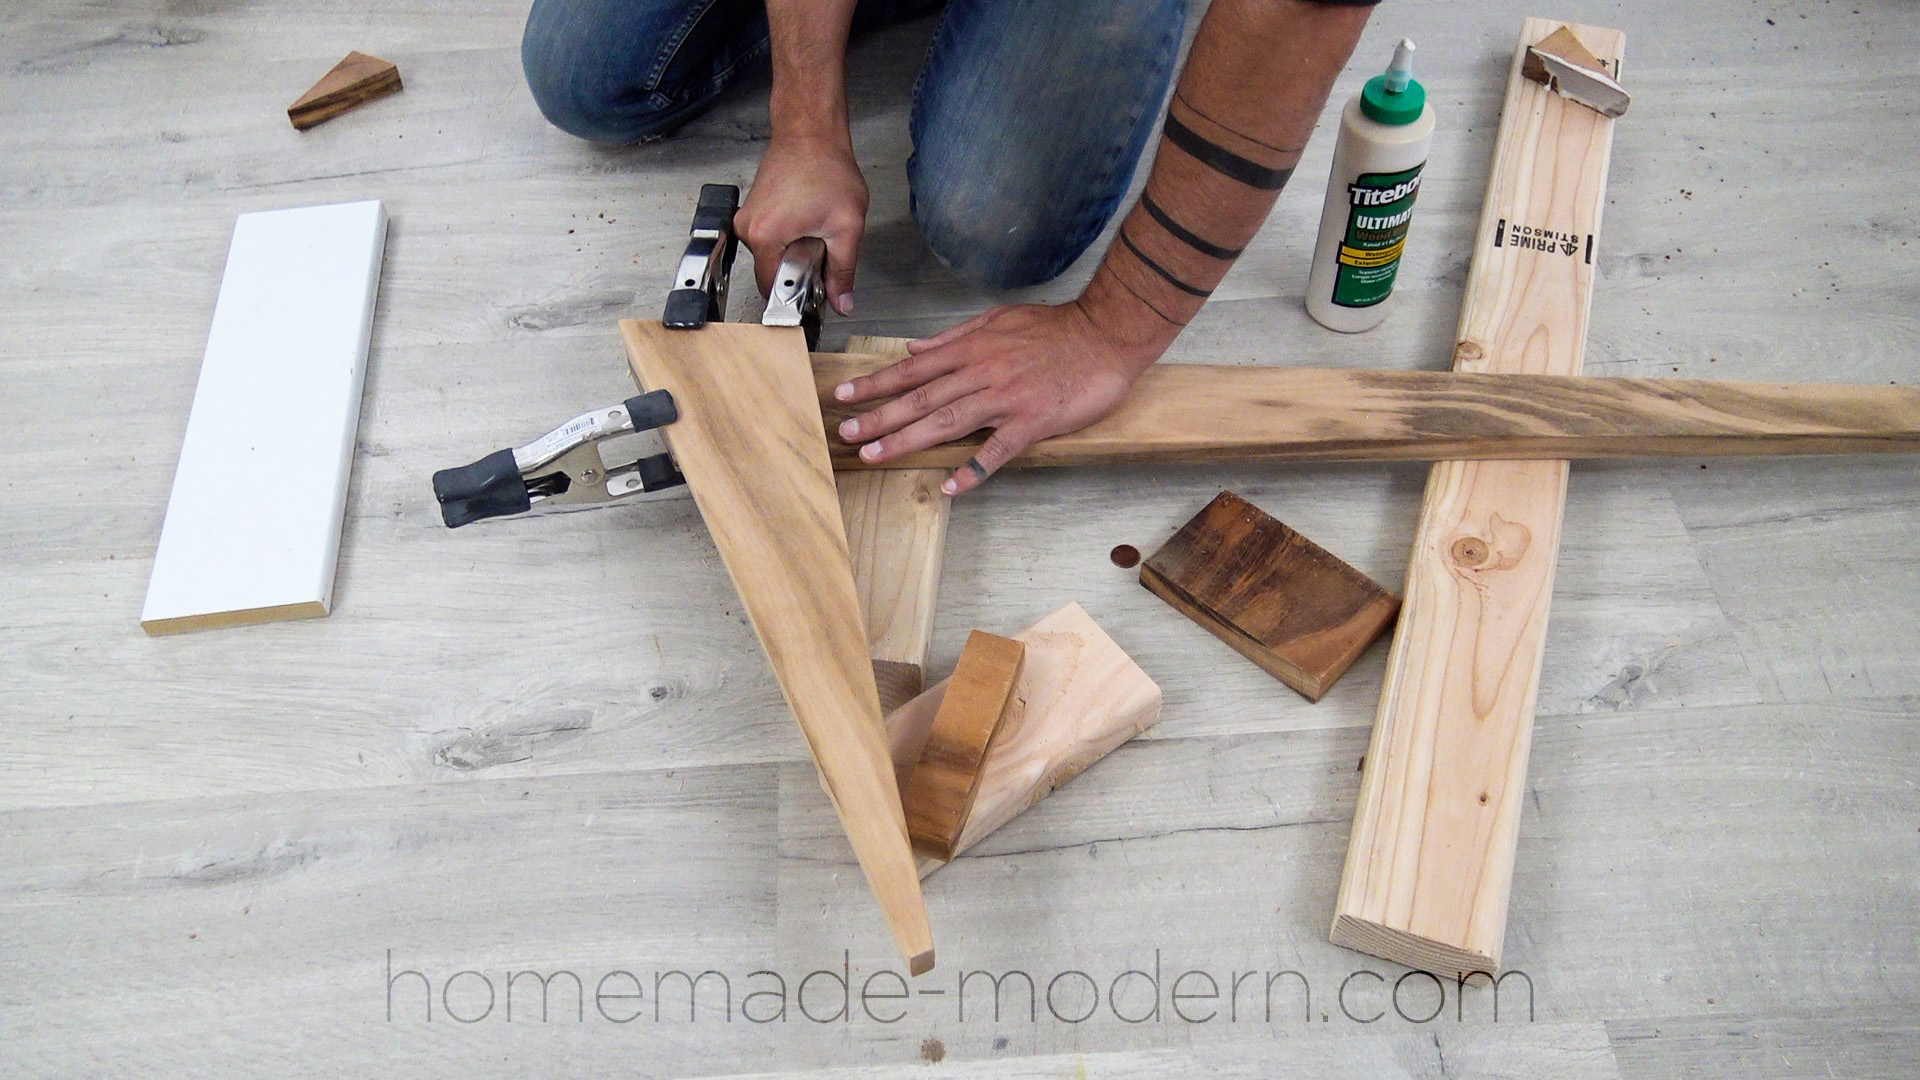 This DIY outdoor tigerwood dining table can be made using just three power tools. For more information go to HomeMade-Modern.com